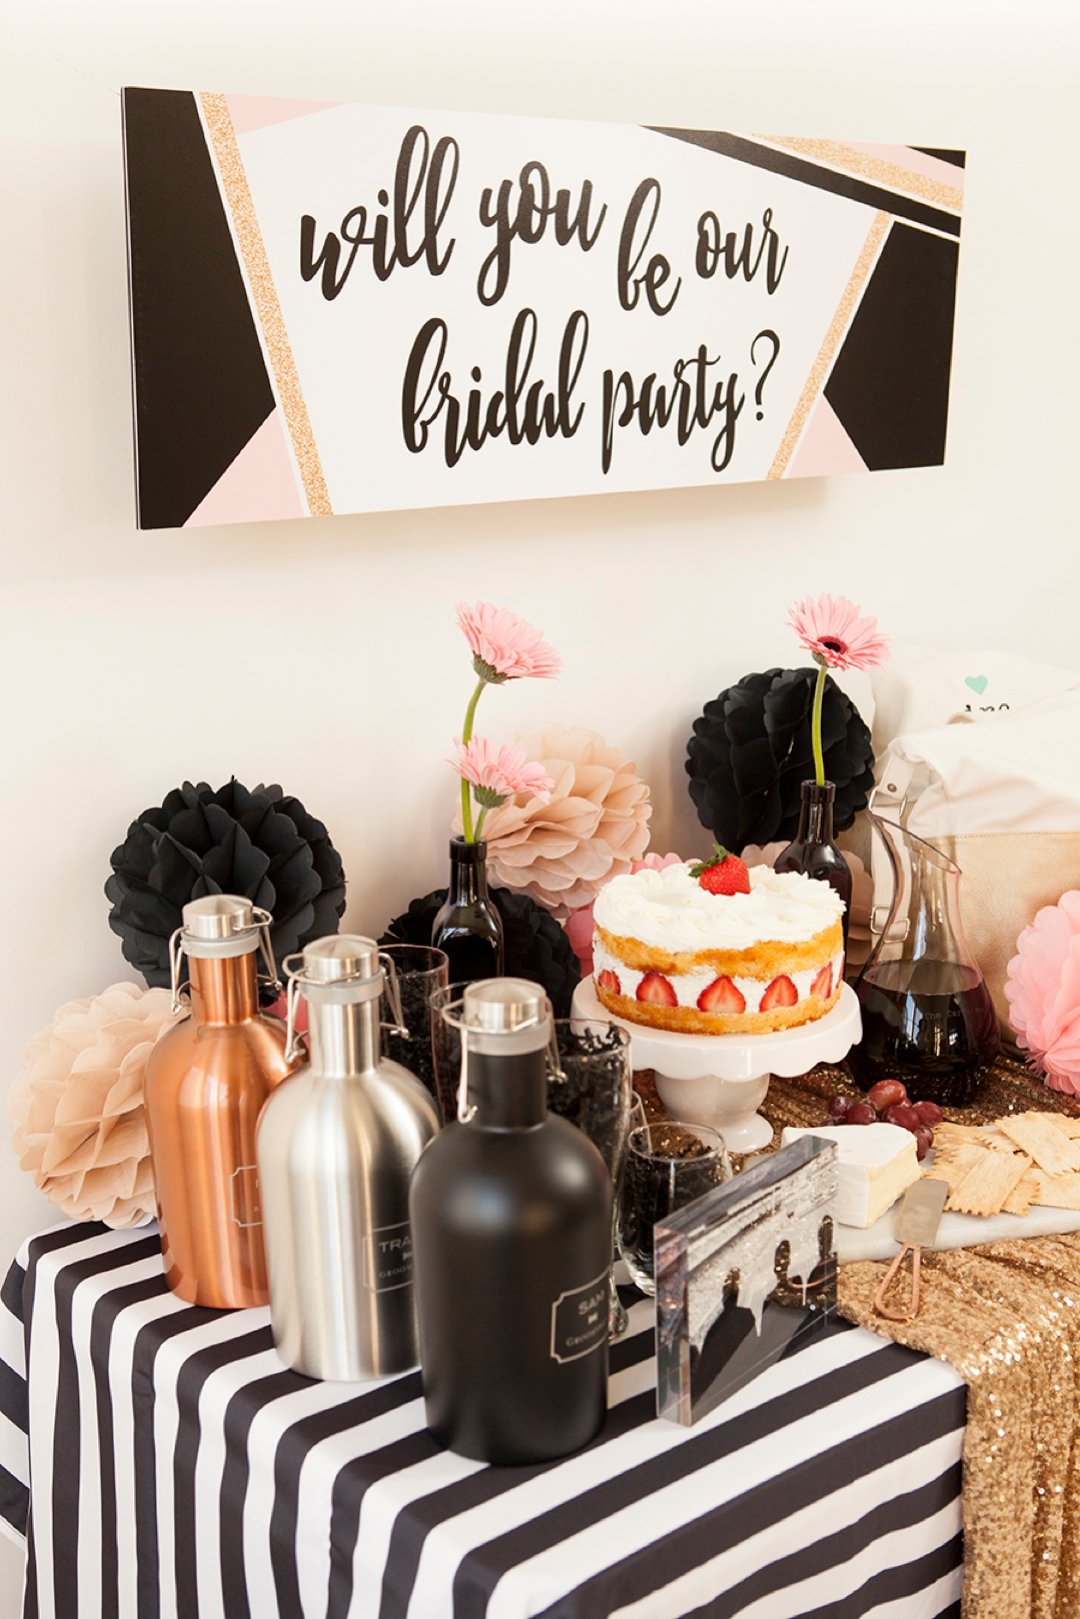 Adorable Will You Be Our Bridal Party, party idea!